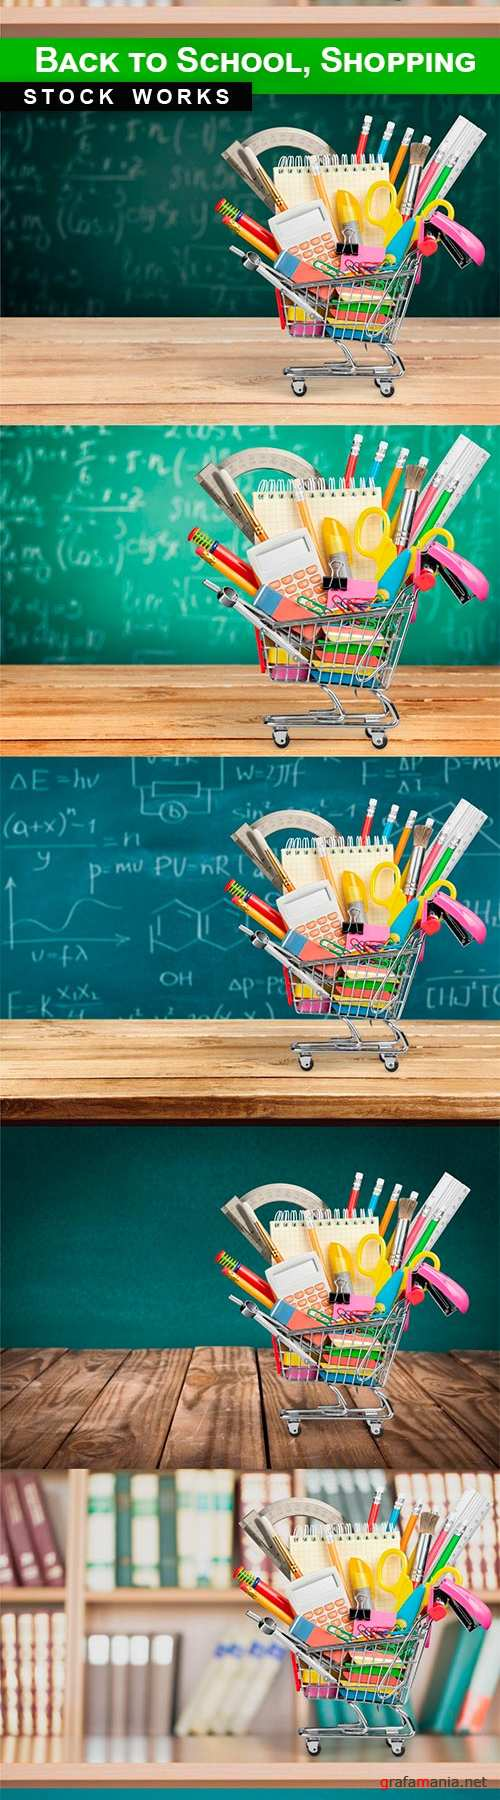 Back to school shopping -